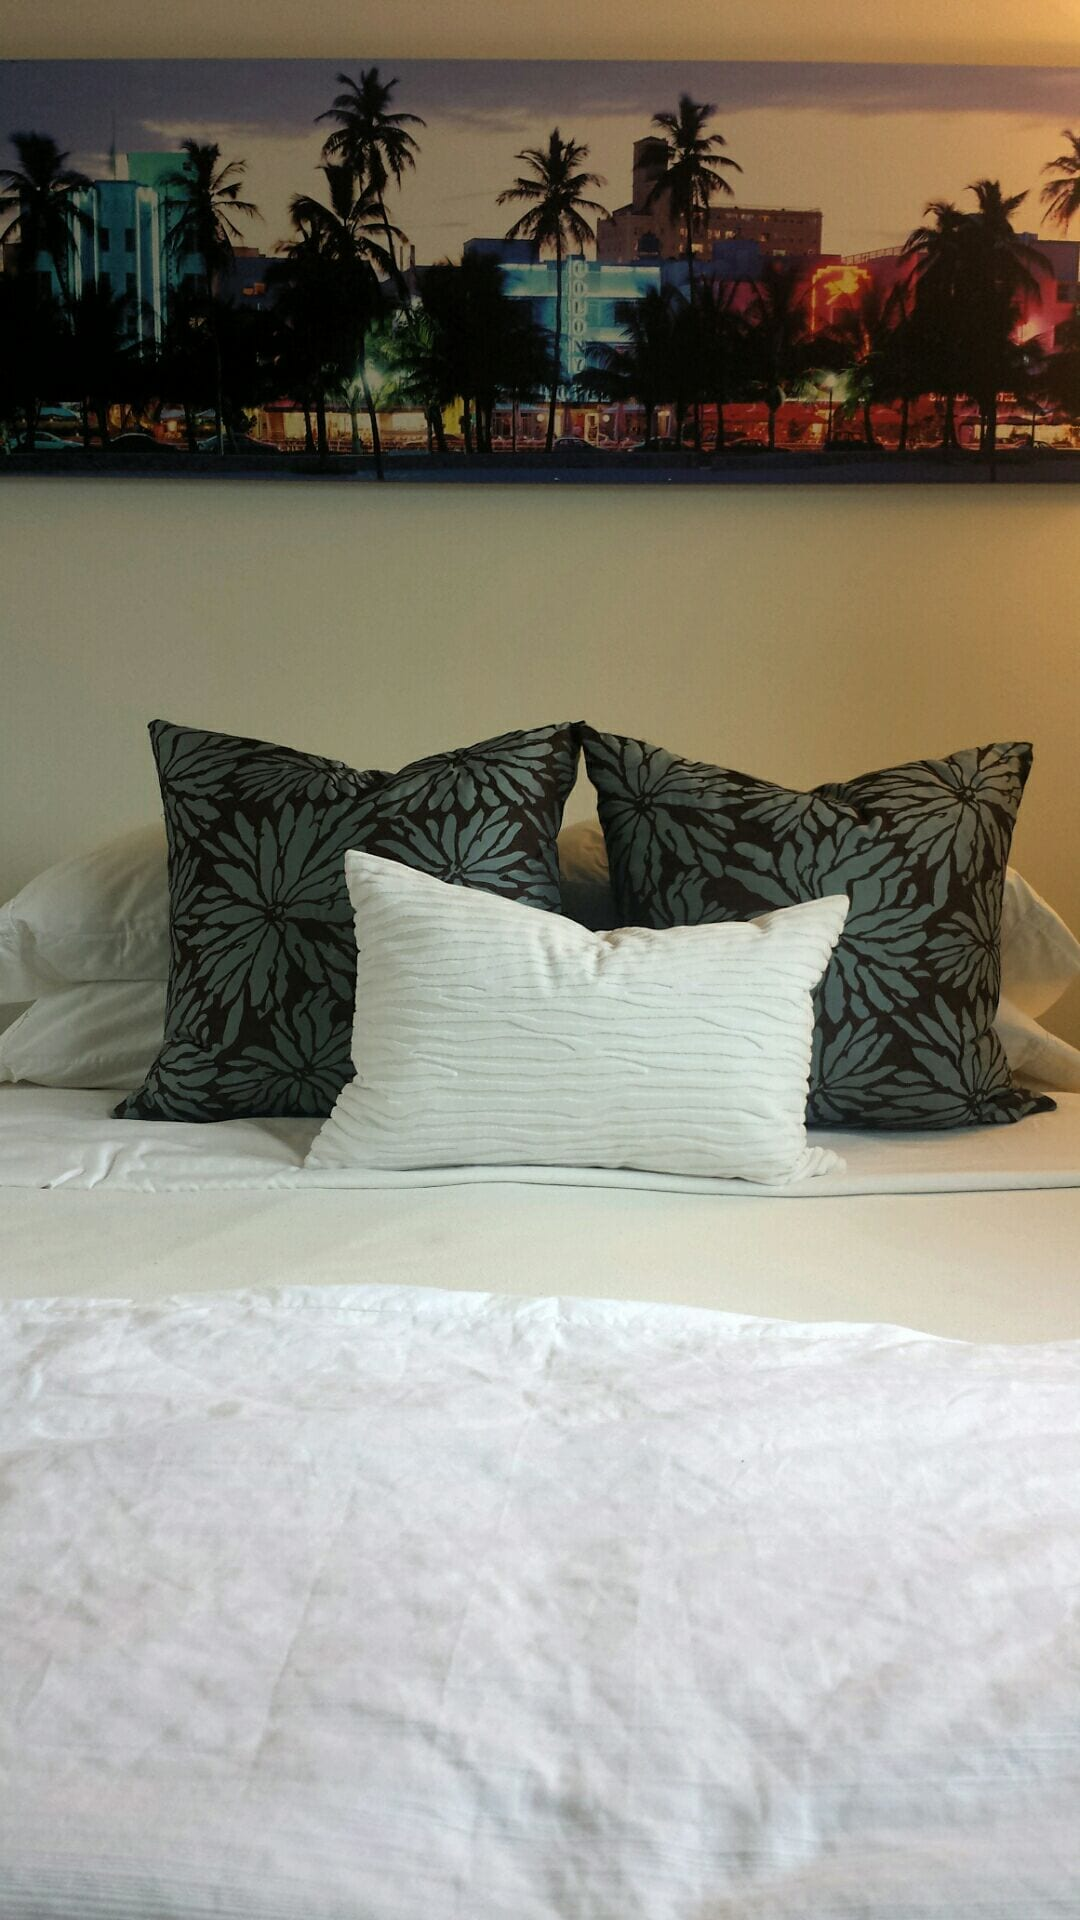 Comfortable plush linens and king size duvet cover